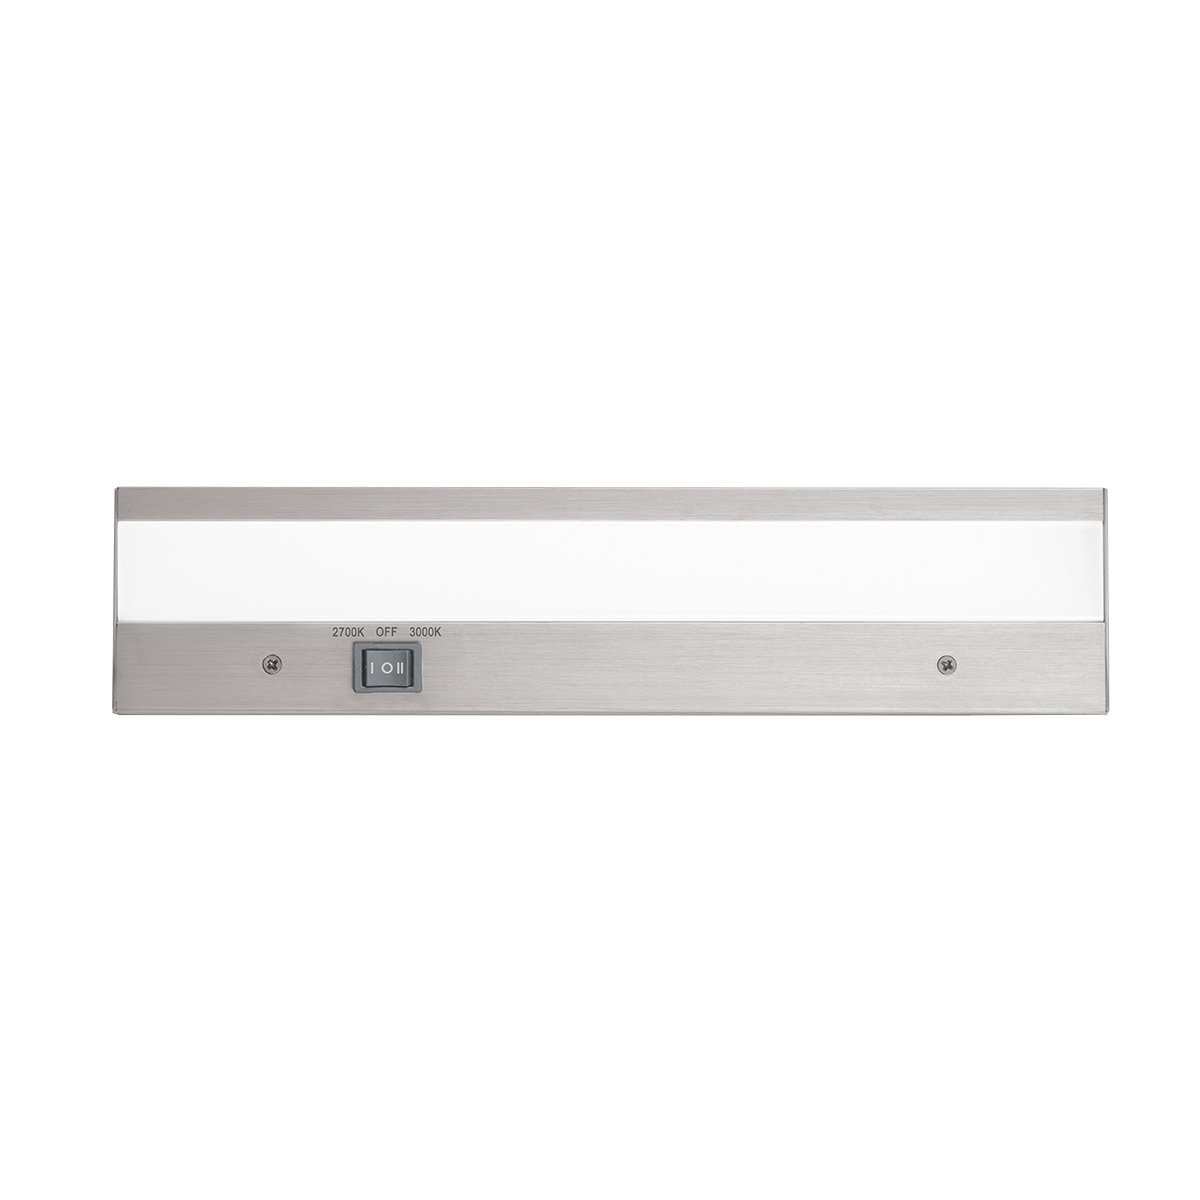 WAC Lighting BA-ACLED12-27/30AL Duo ACLED Dual Color Option Bar in Brushed Aluminum Finish; 2700K and 3000K, 12 Inches